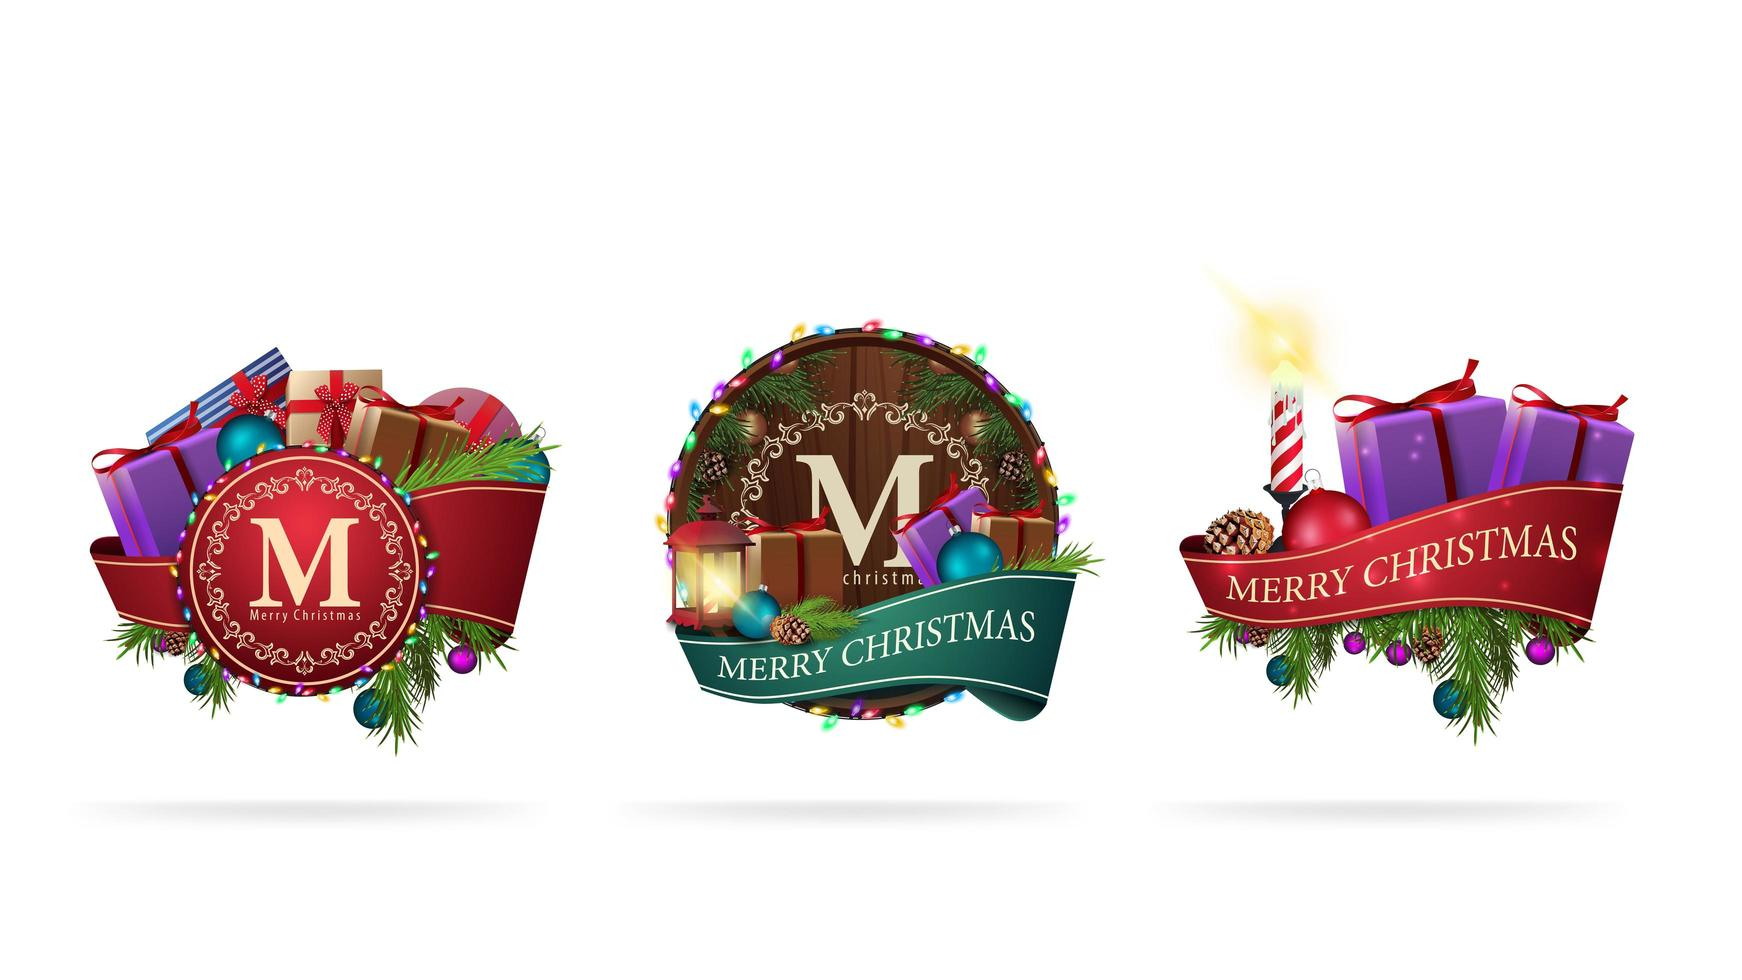 Set of Christmas stickers made of ribbons decorated with Christmas elements isolated on white background vector